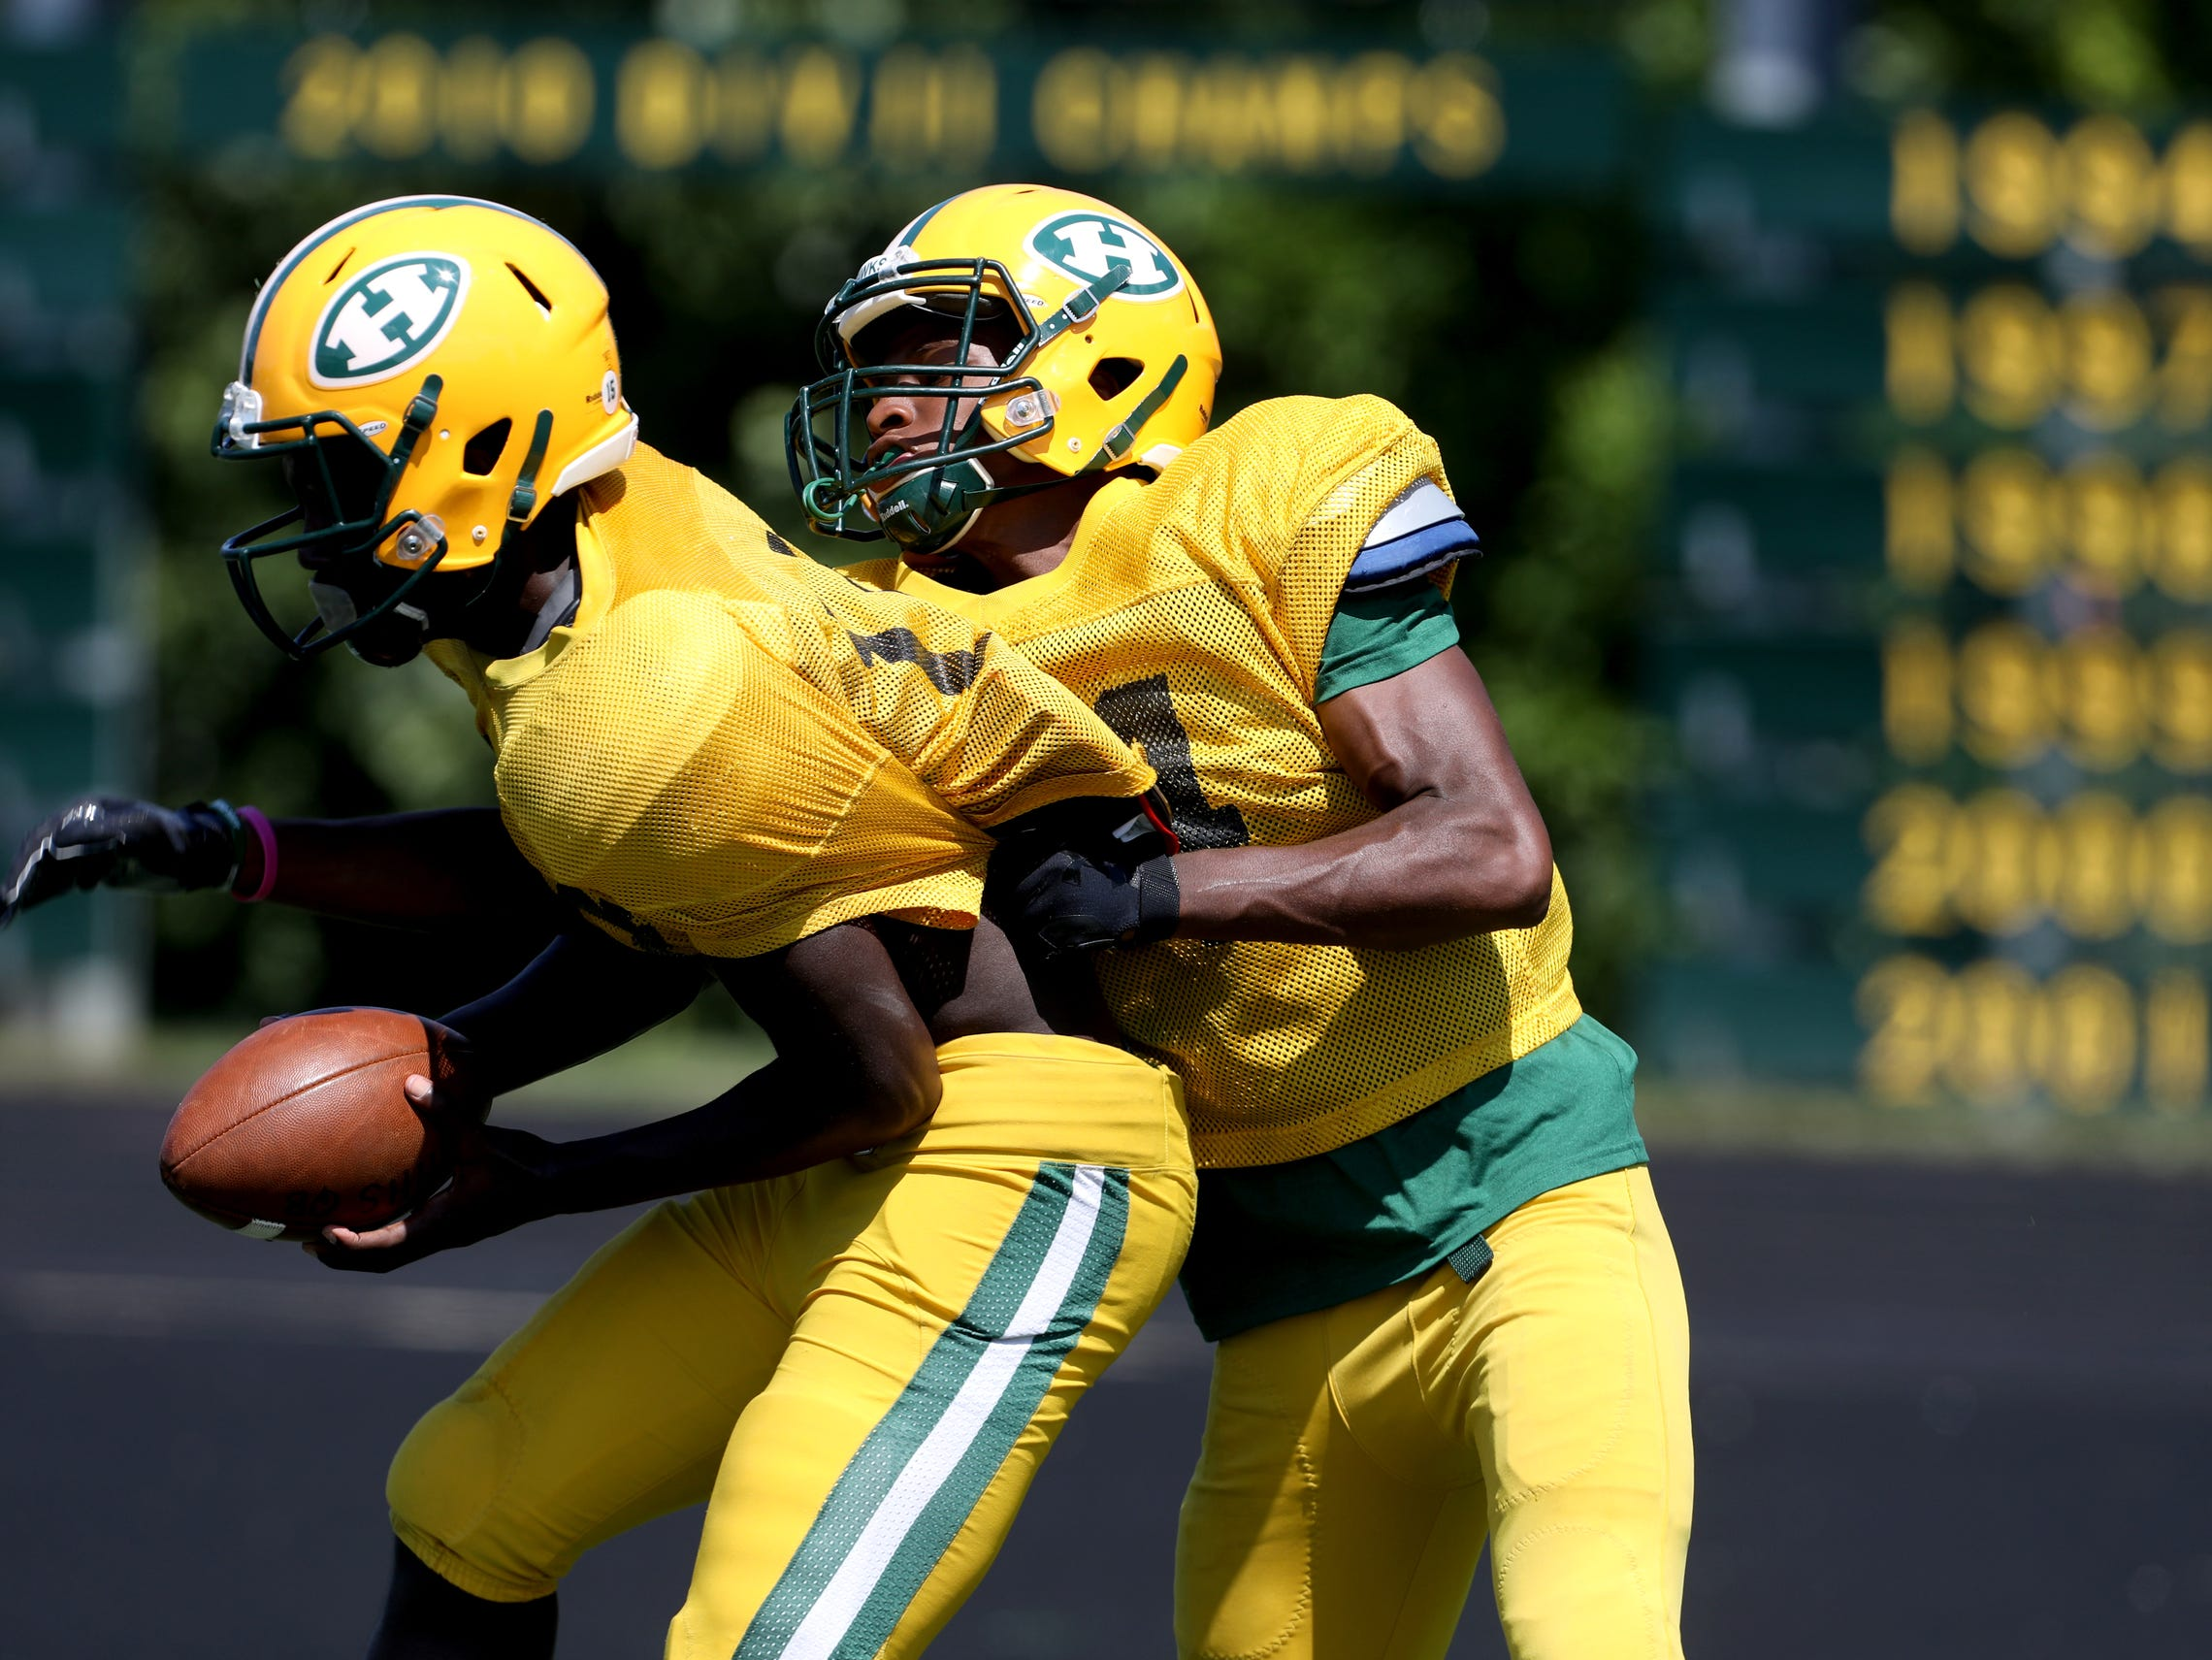 Malcolm King steps in front of Rod Heard during for the catch during end zone drills during Farmington Hills Harrison High School football practice at the school in Farmington Hills on Thursday, Aug. 23, 2018.